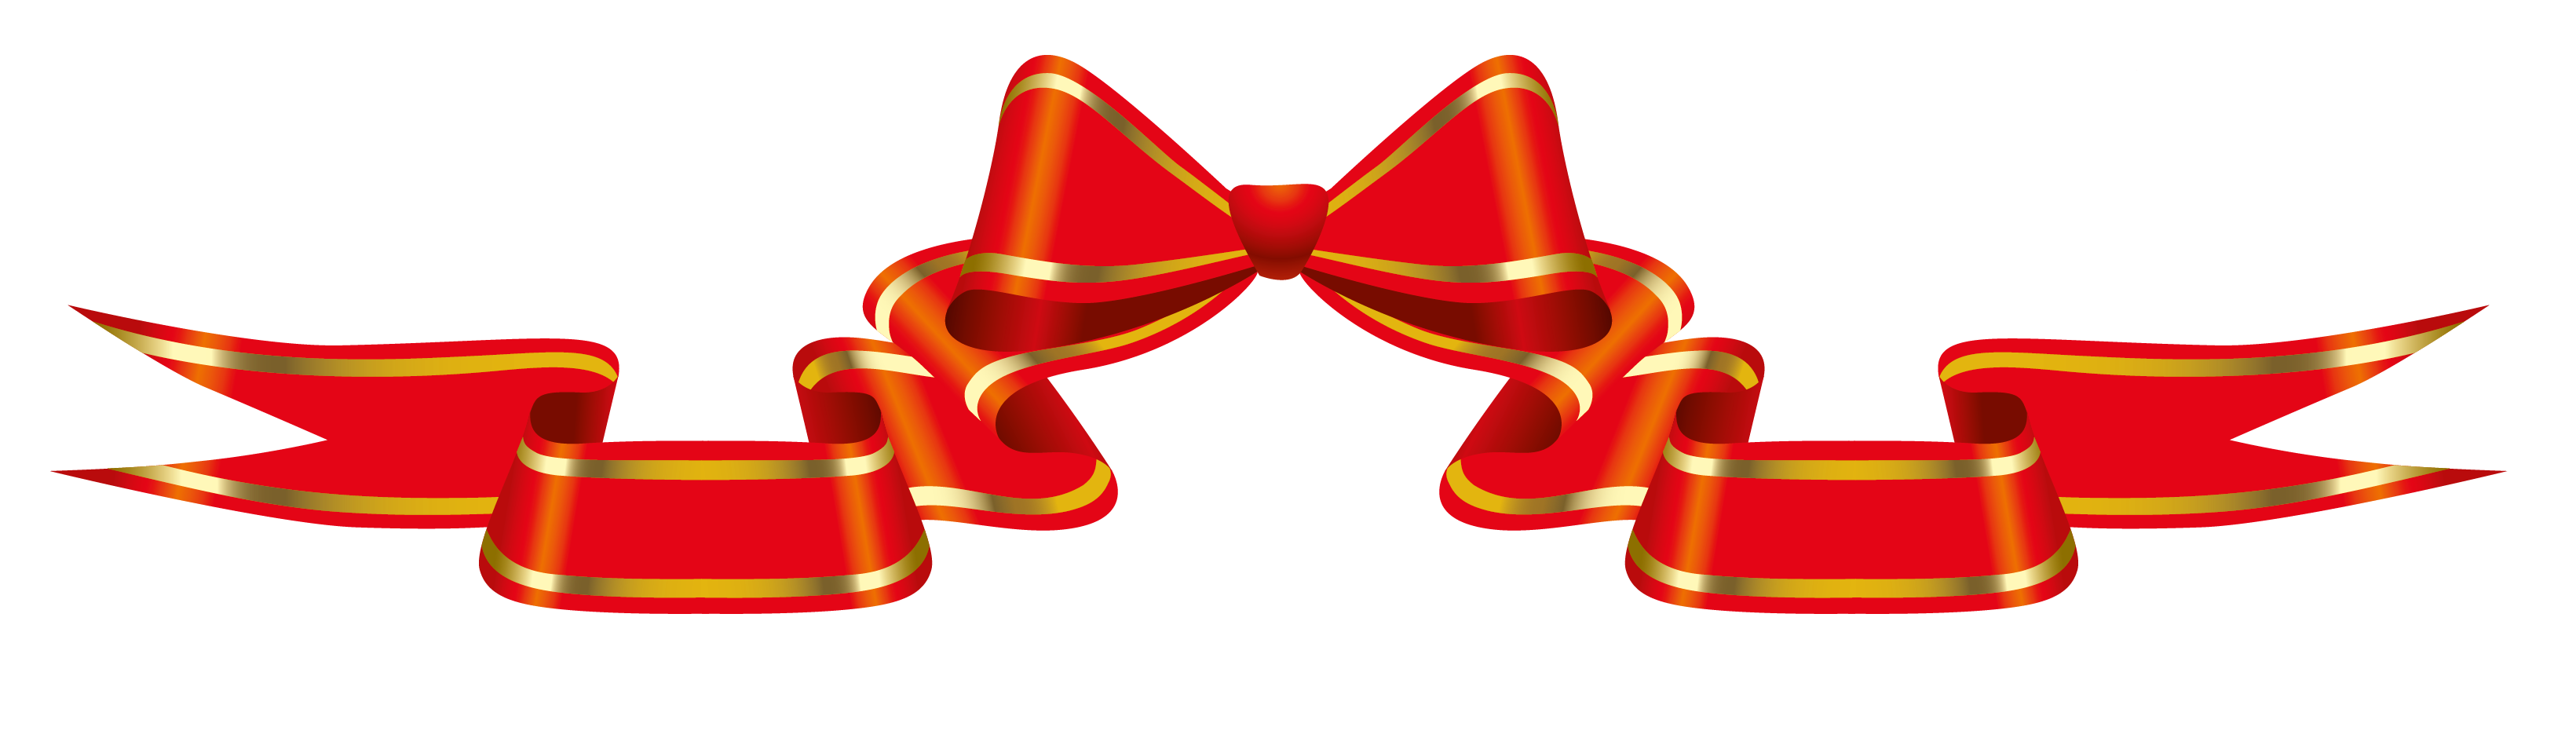 clip library download Red with png picture. Bow clipart banner